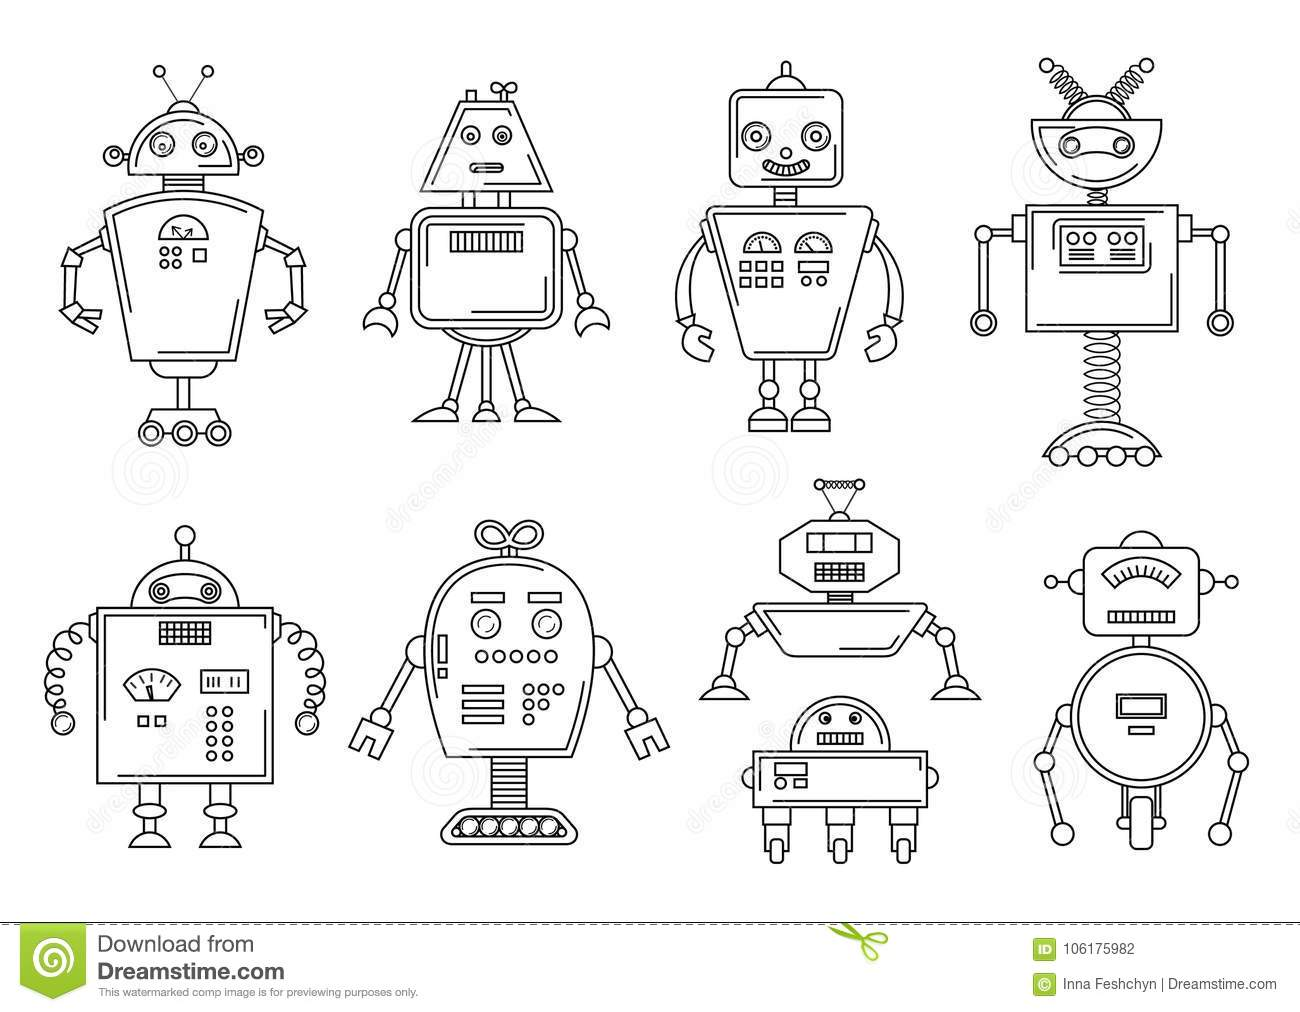 Vector Illustration Of A Robot. Mechanical Character